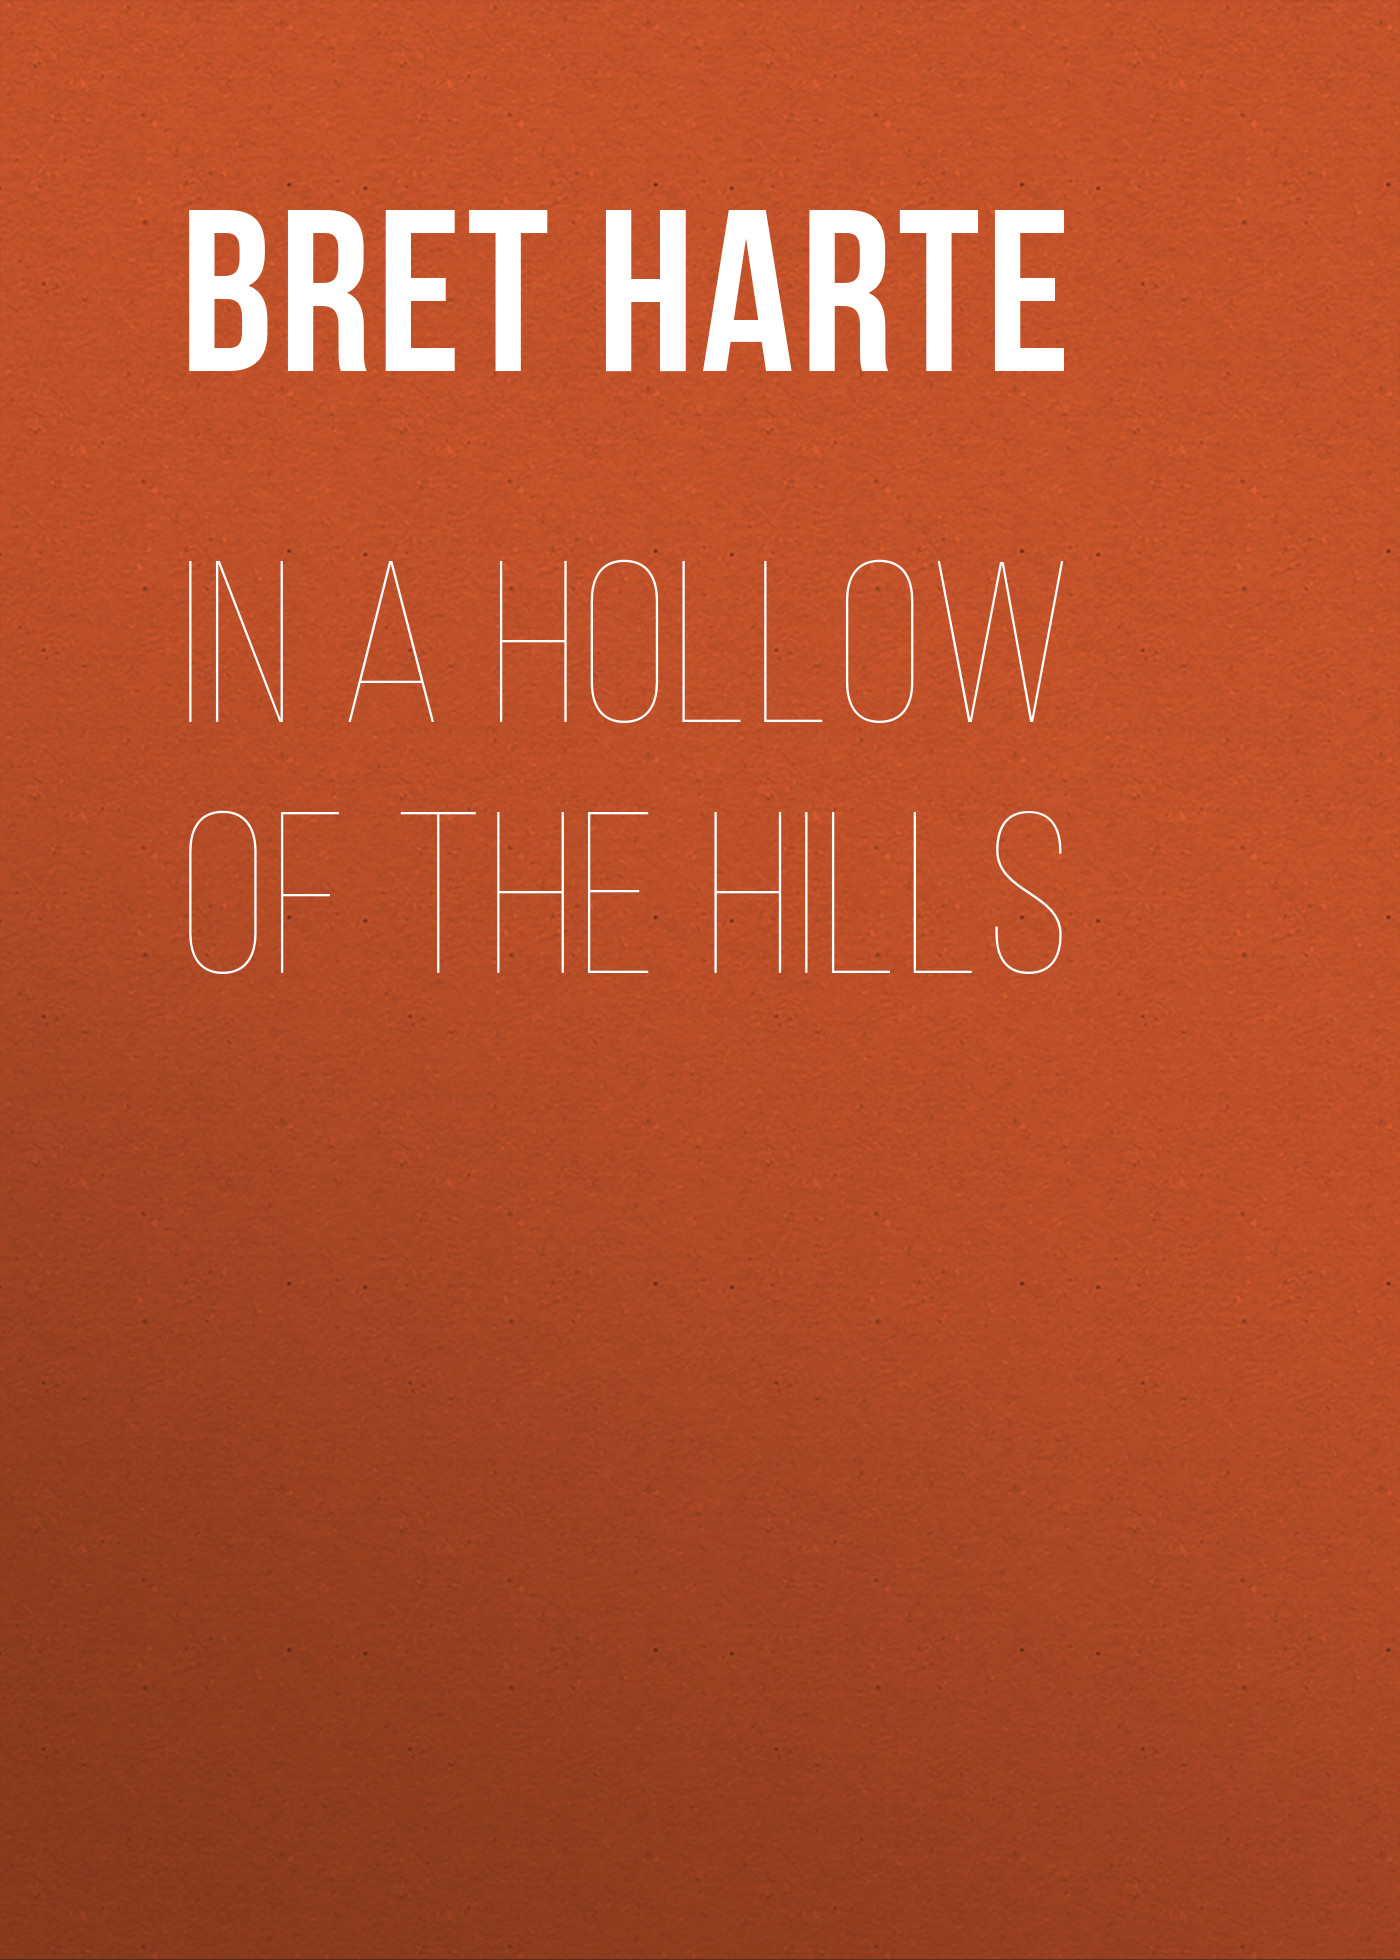 Bret Harte In a Hollow of the Hills стоимость